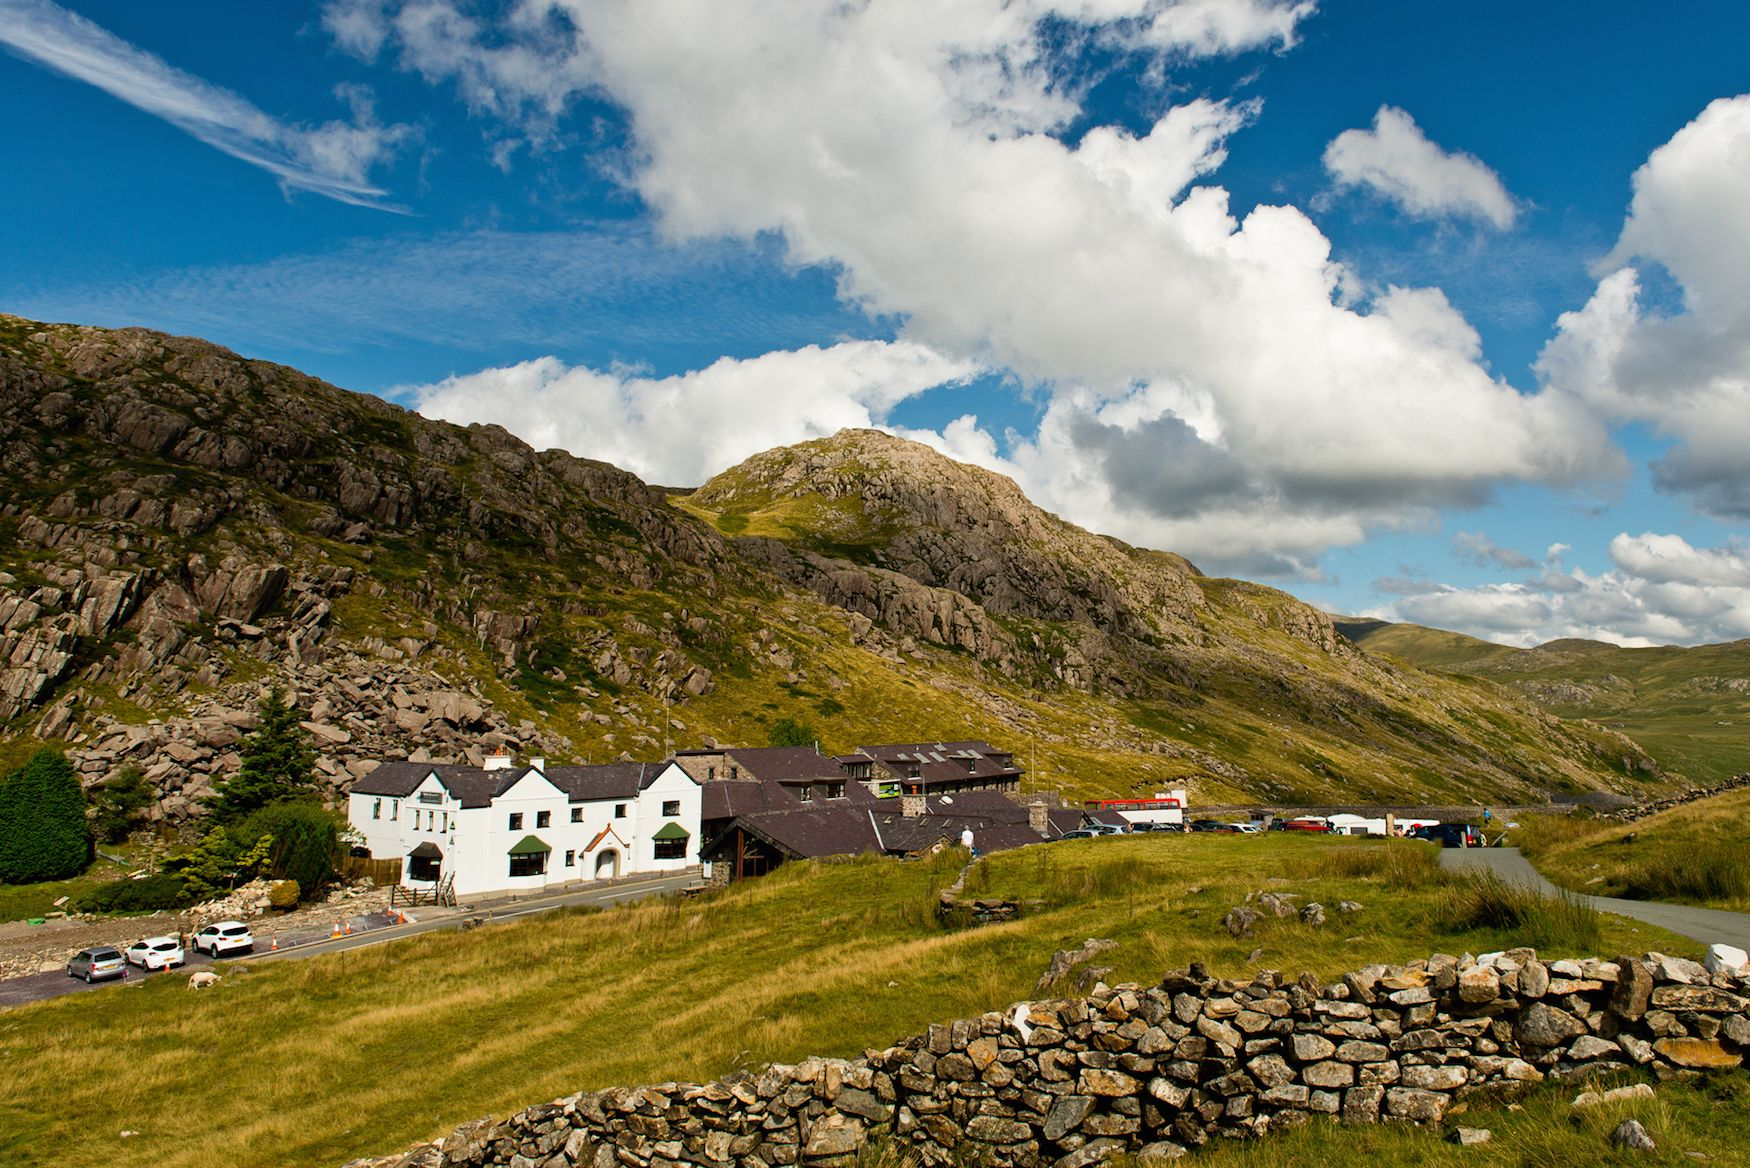 Hotels, Cottages, B&Bs & Glamping in Snowdonia National Park - Cool Places to Stay in the UK